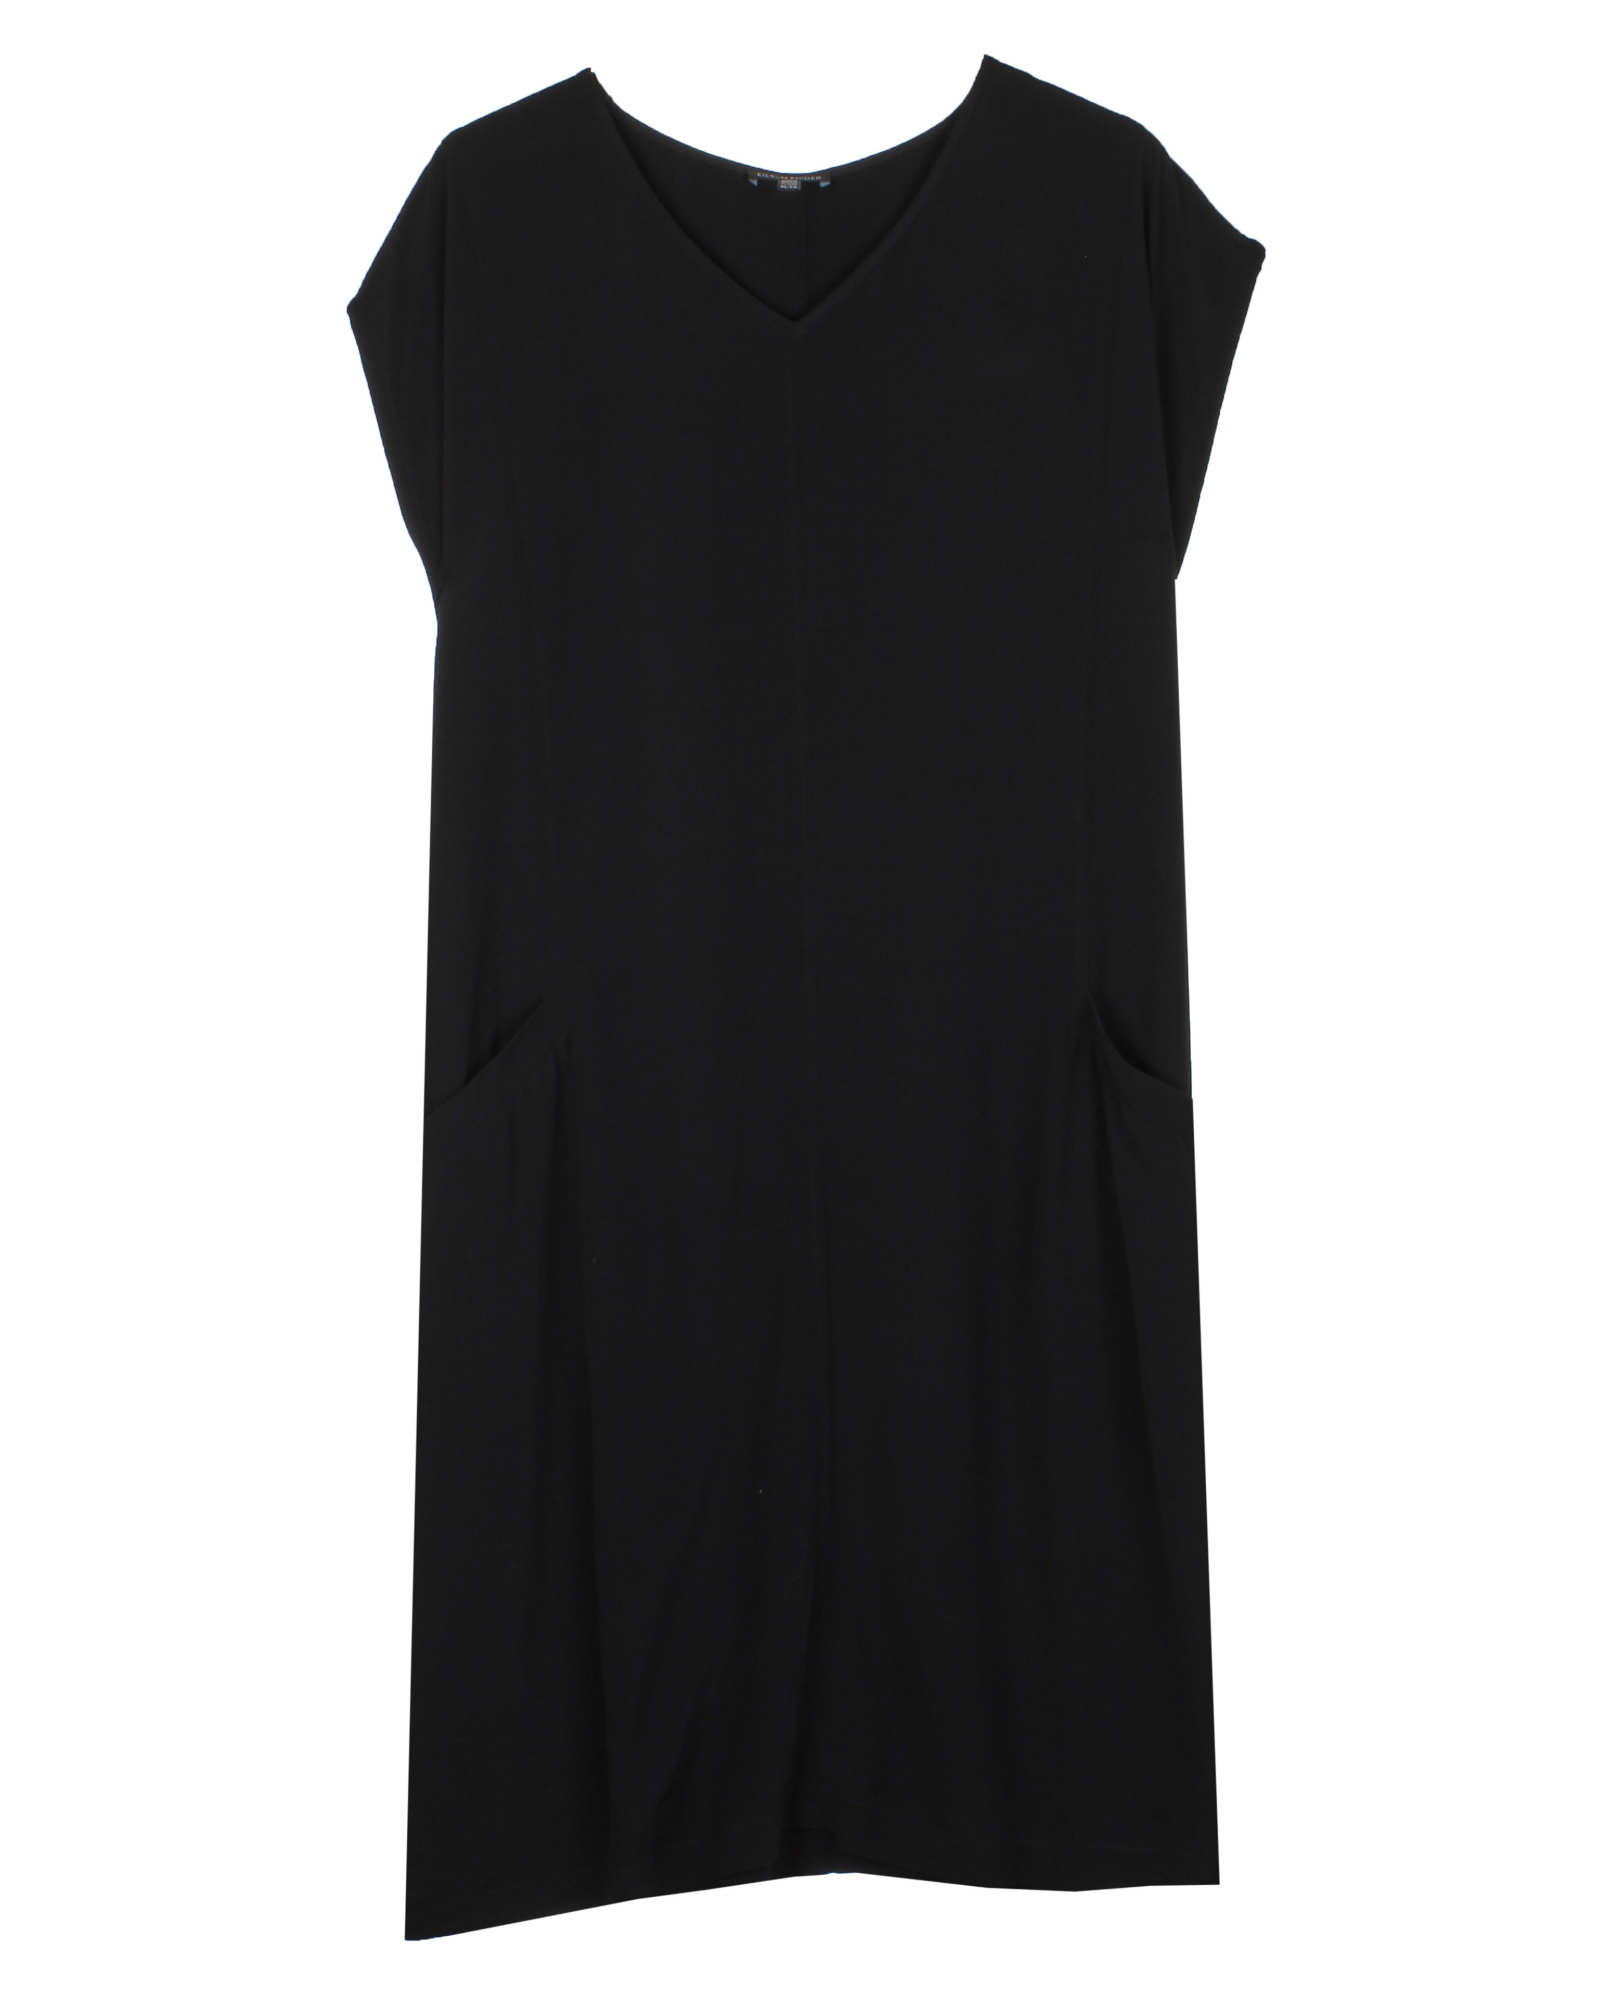 Tencel Viscose Crinkle Crepe Dress